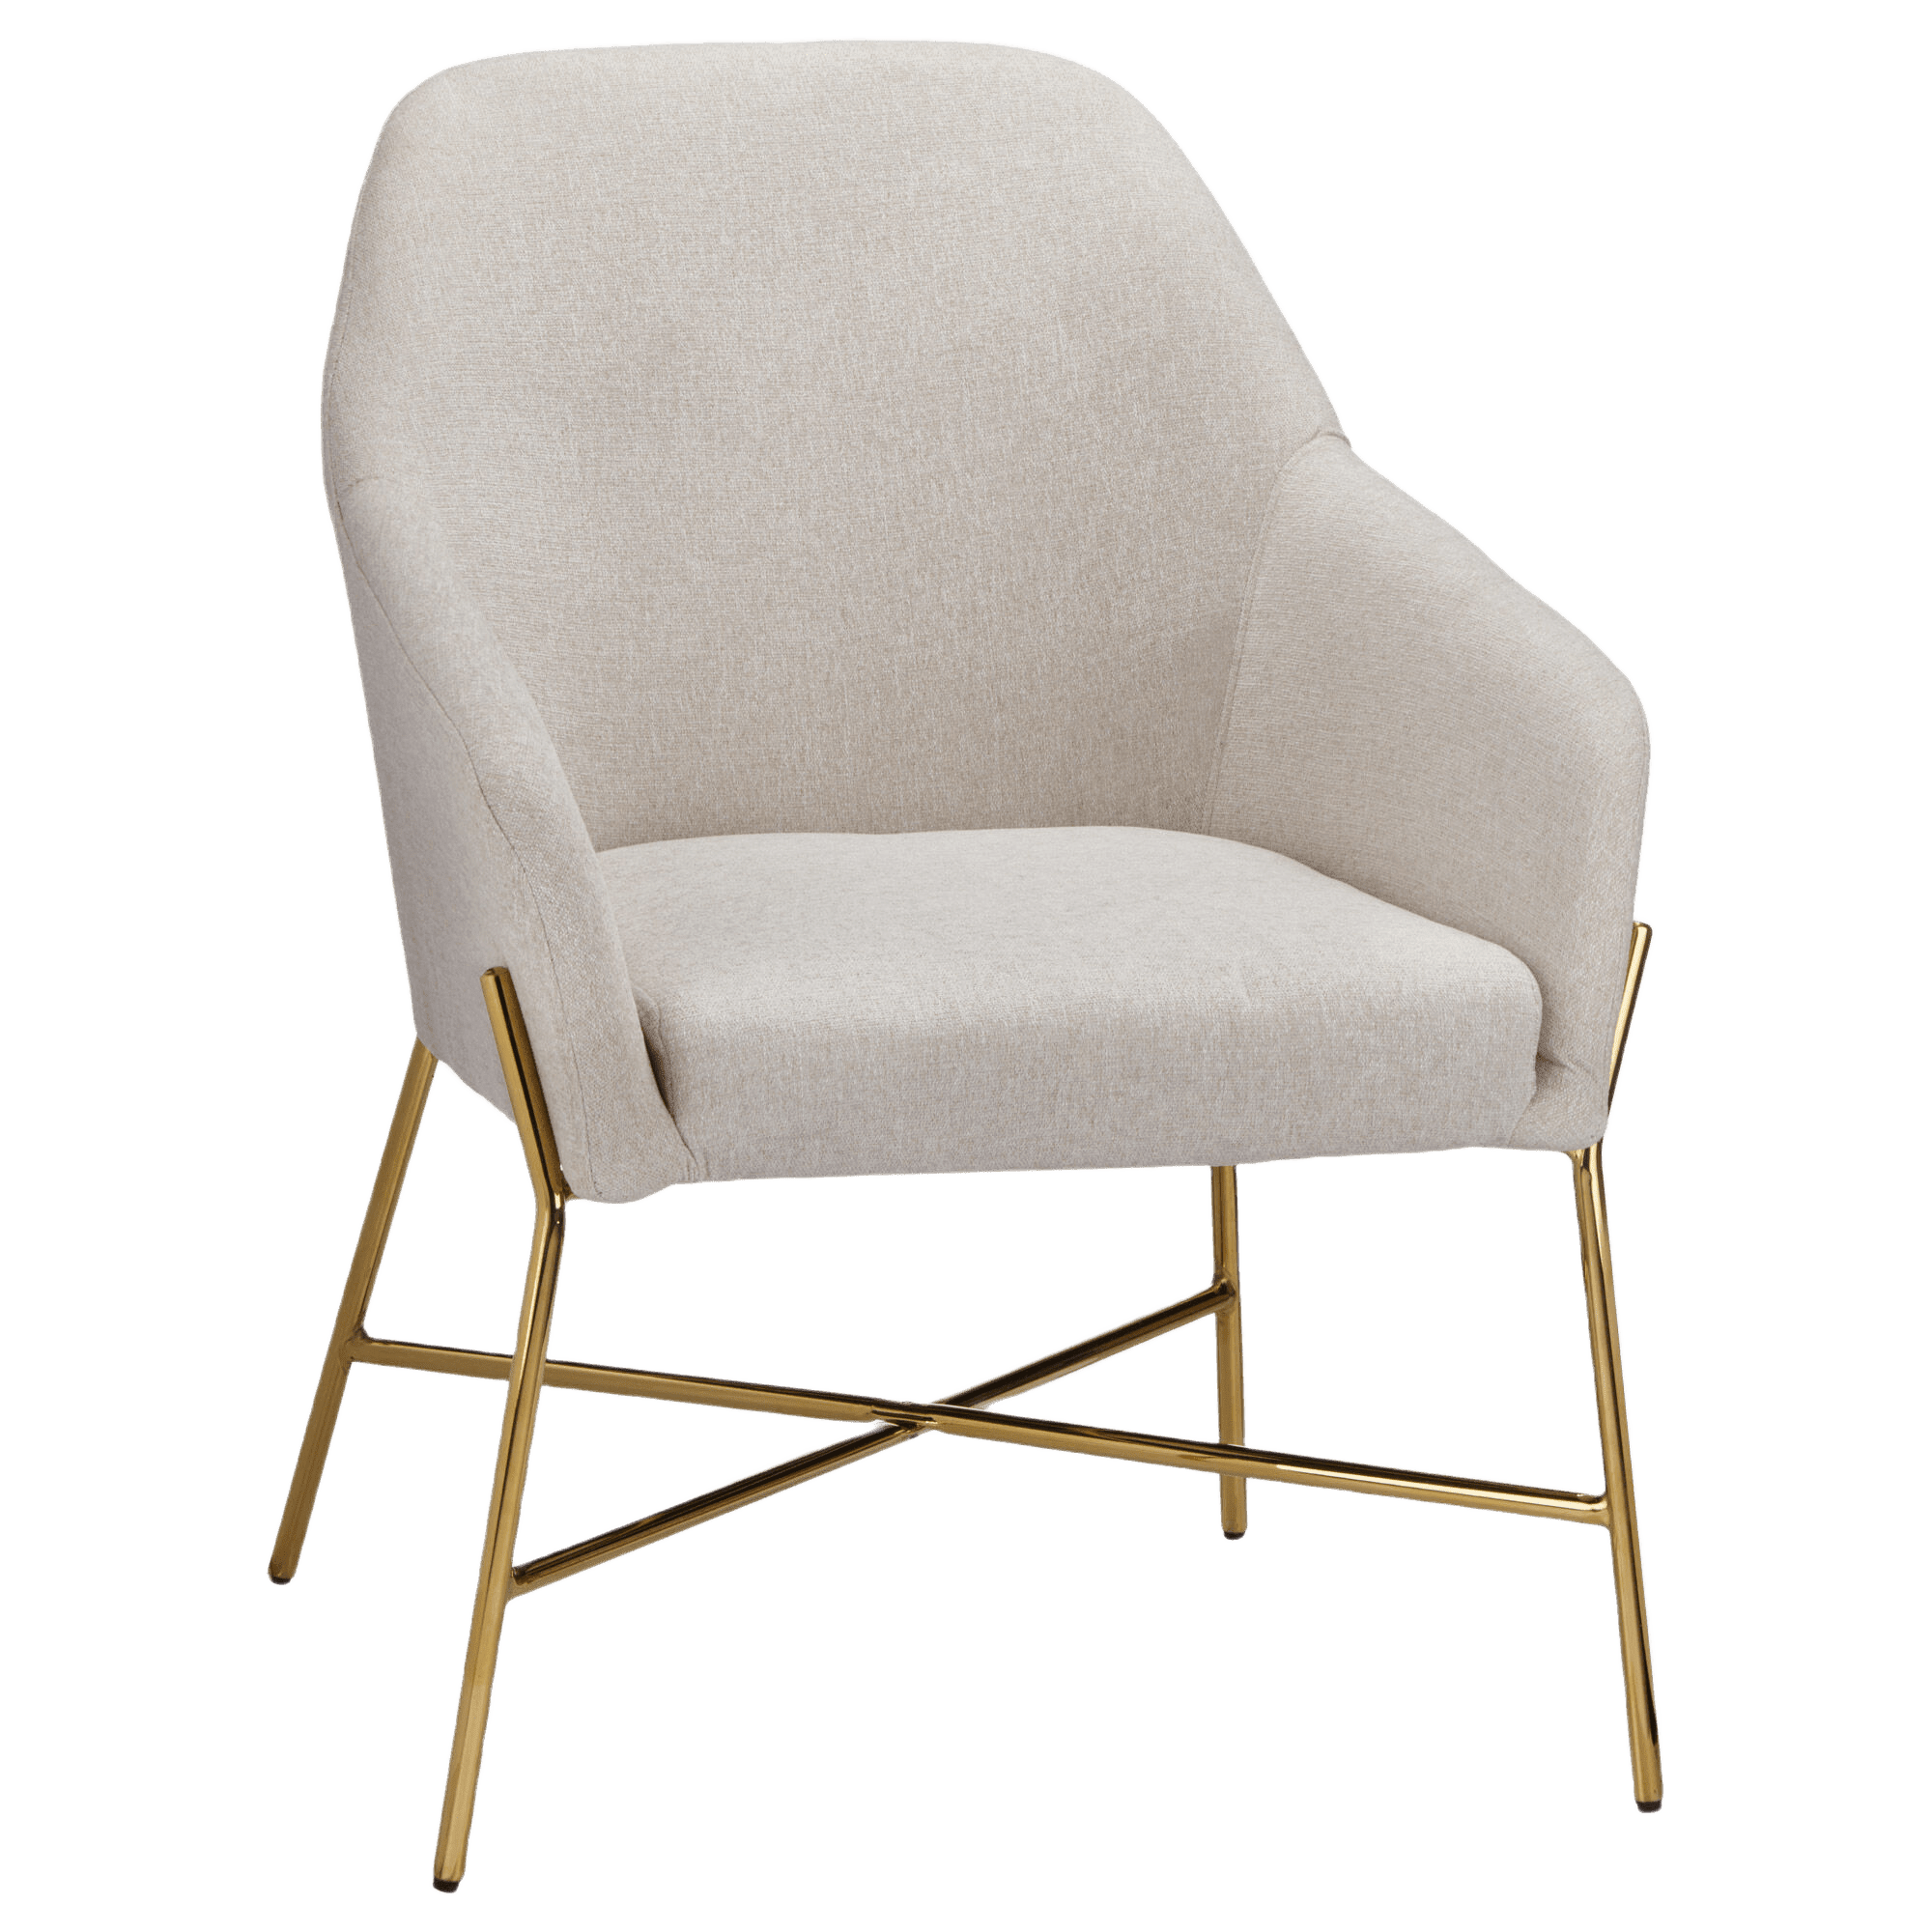 Fabric and Gold Metal Lounge Chair